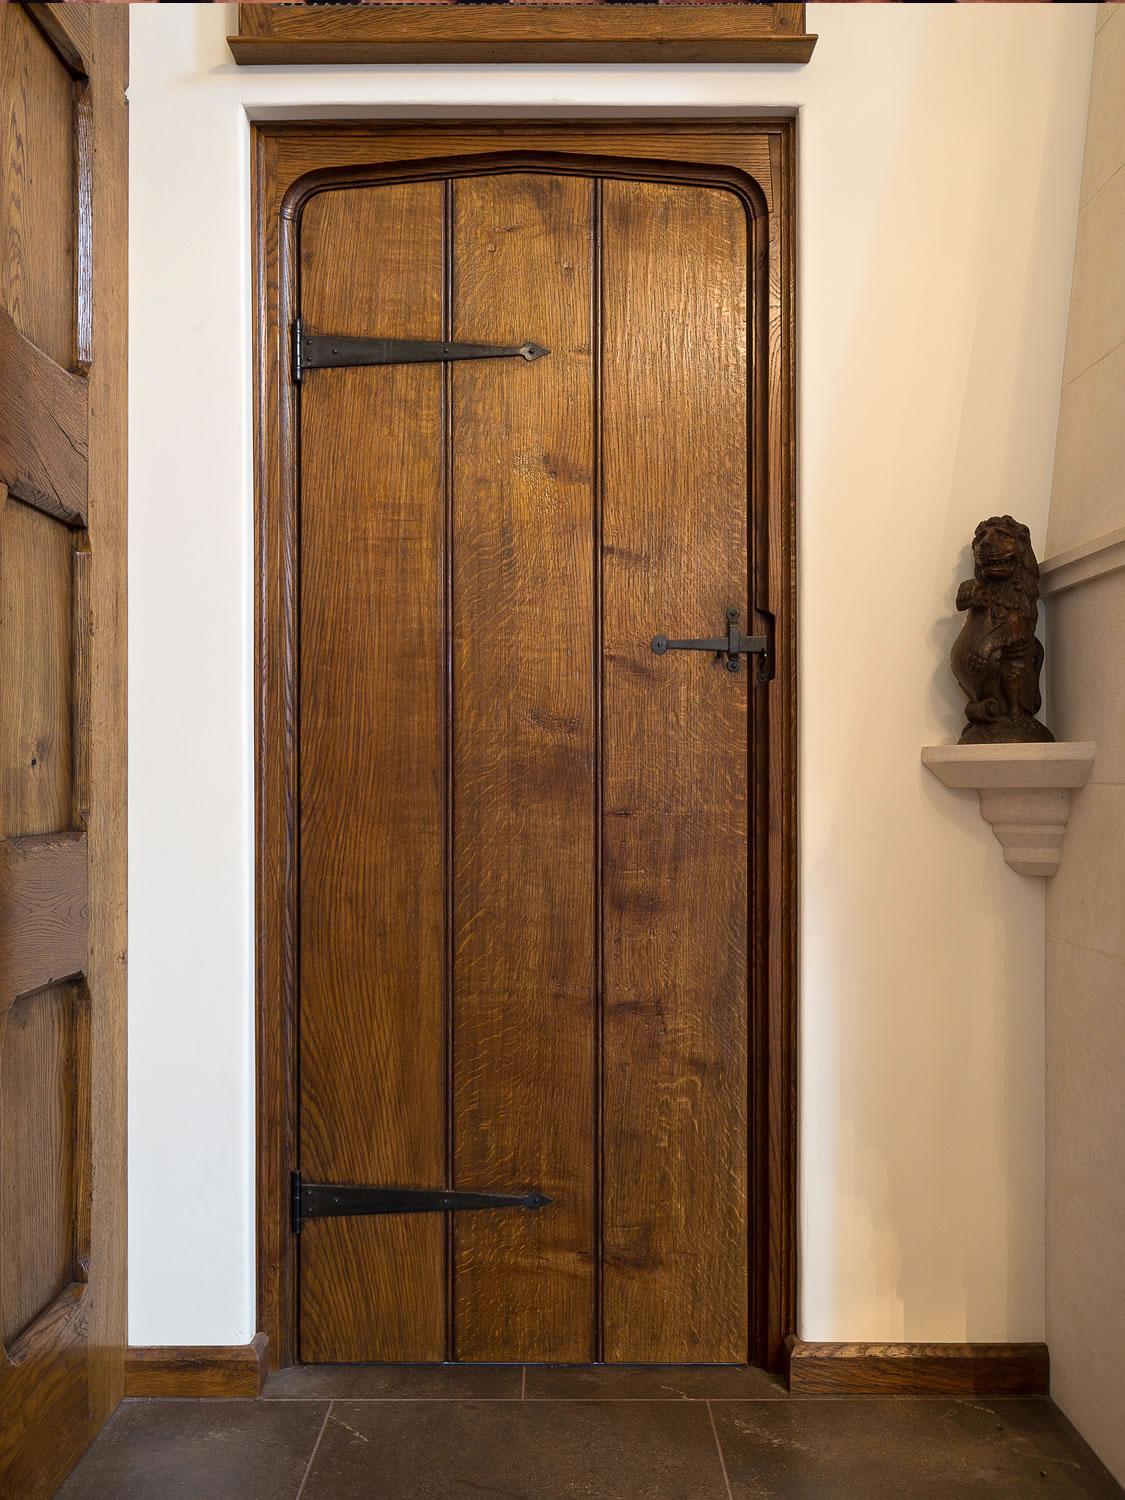 Tudor arched solid oak planked door